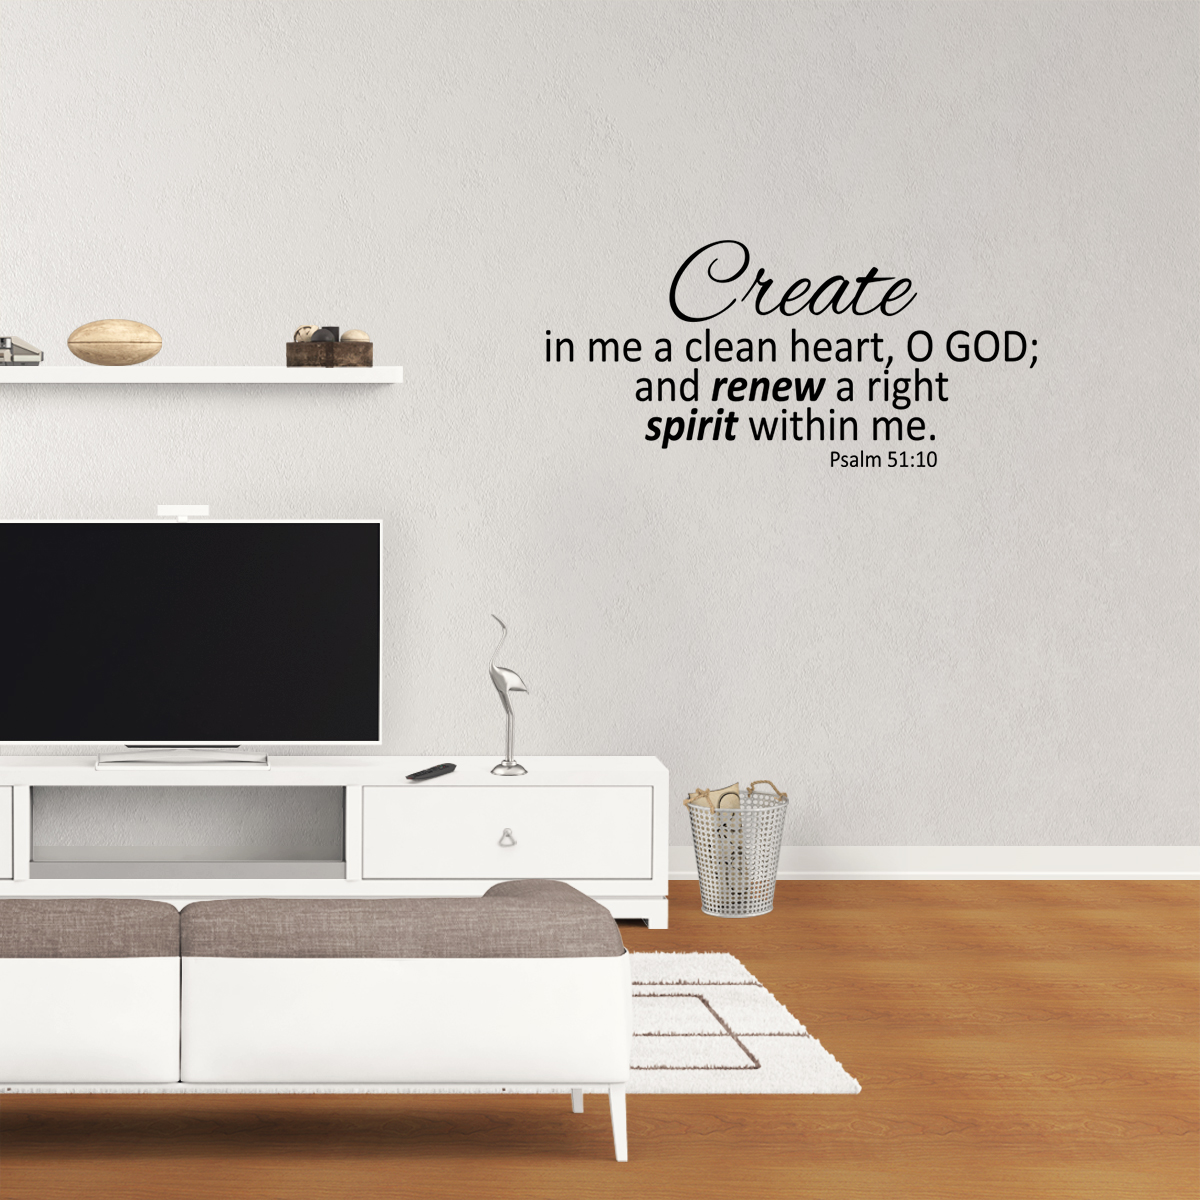 Create In Me A Clean Heart Psalm 51:10 Home Vinyl Wall Decal Quotes Wall Stickers Religious Decals Home Decor Decals JR175